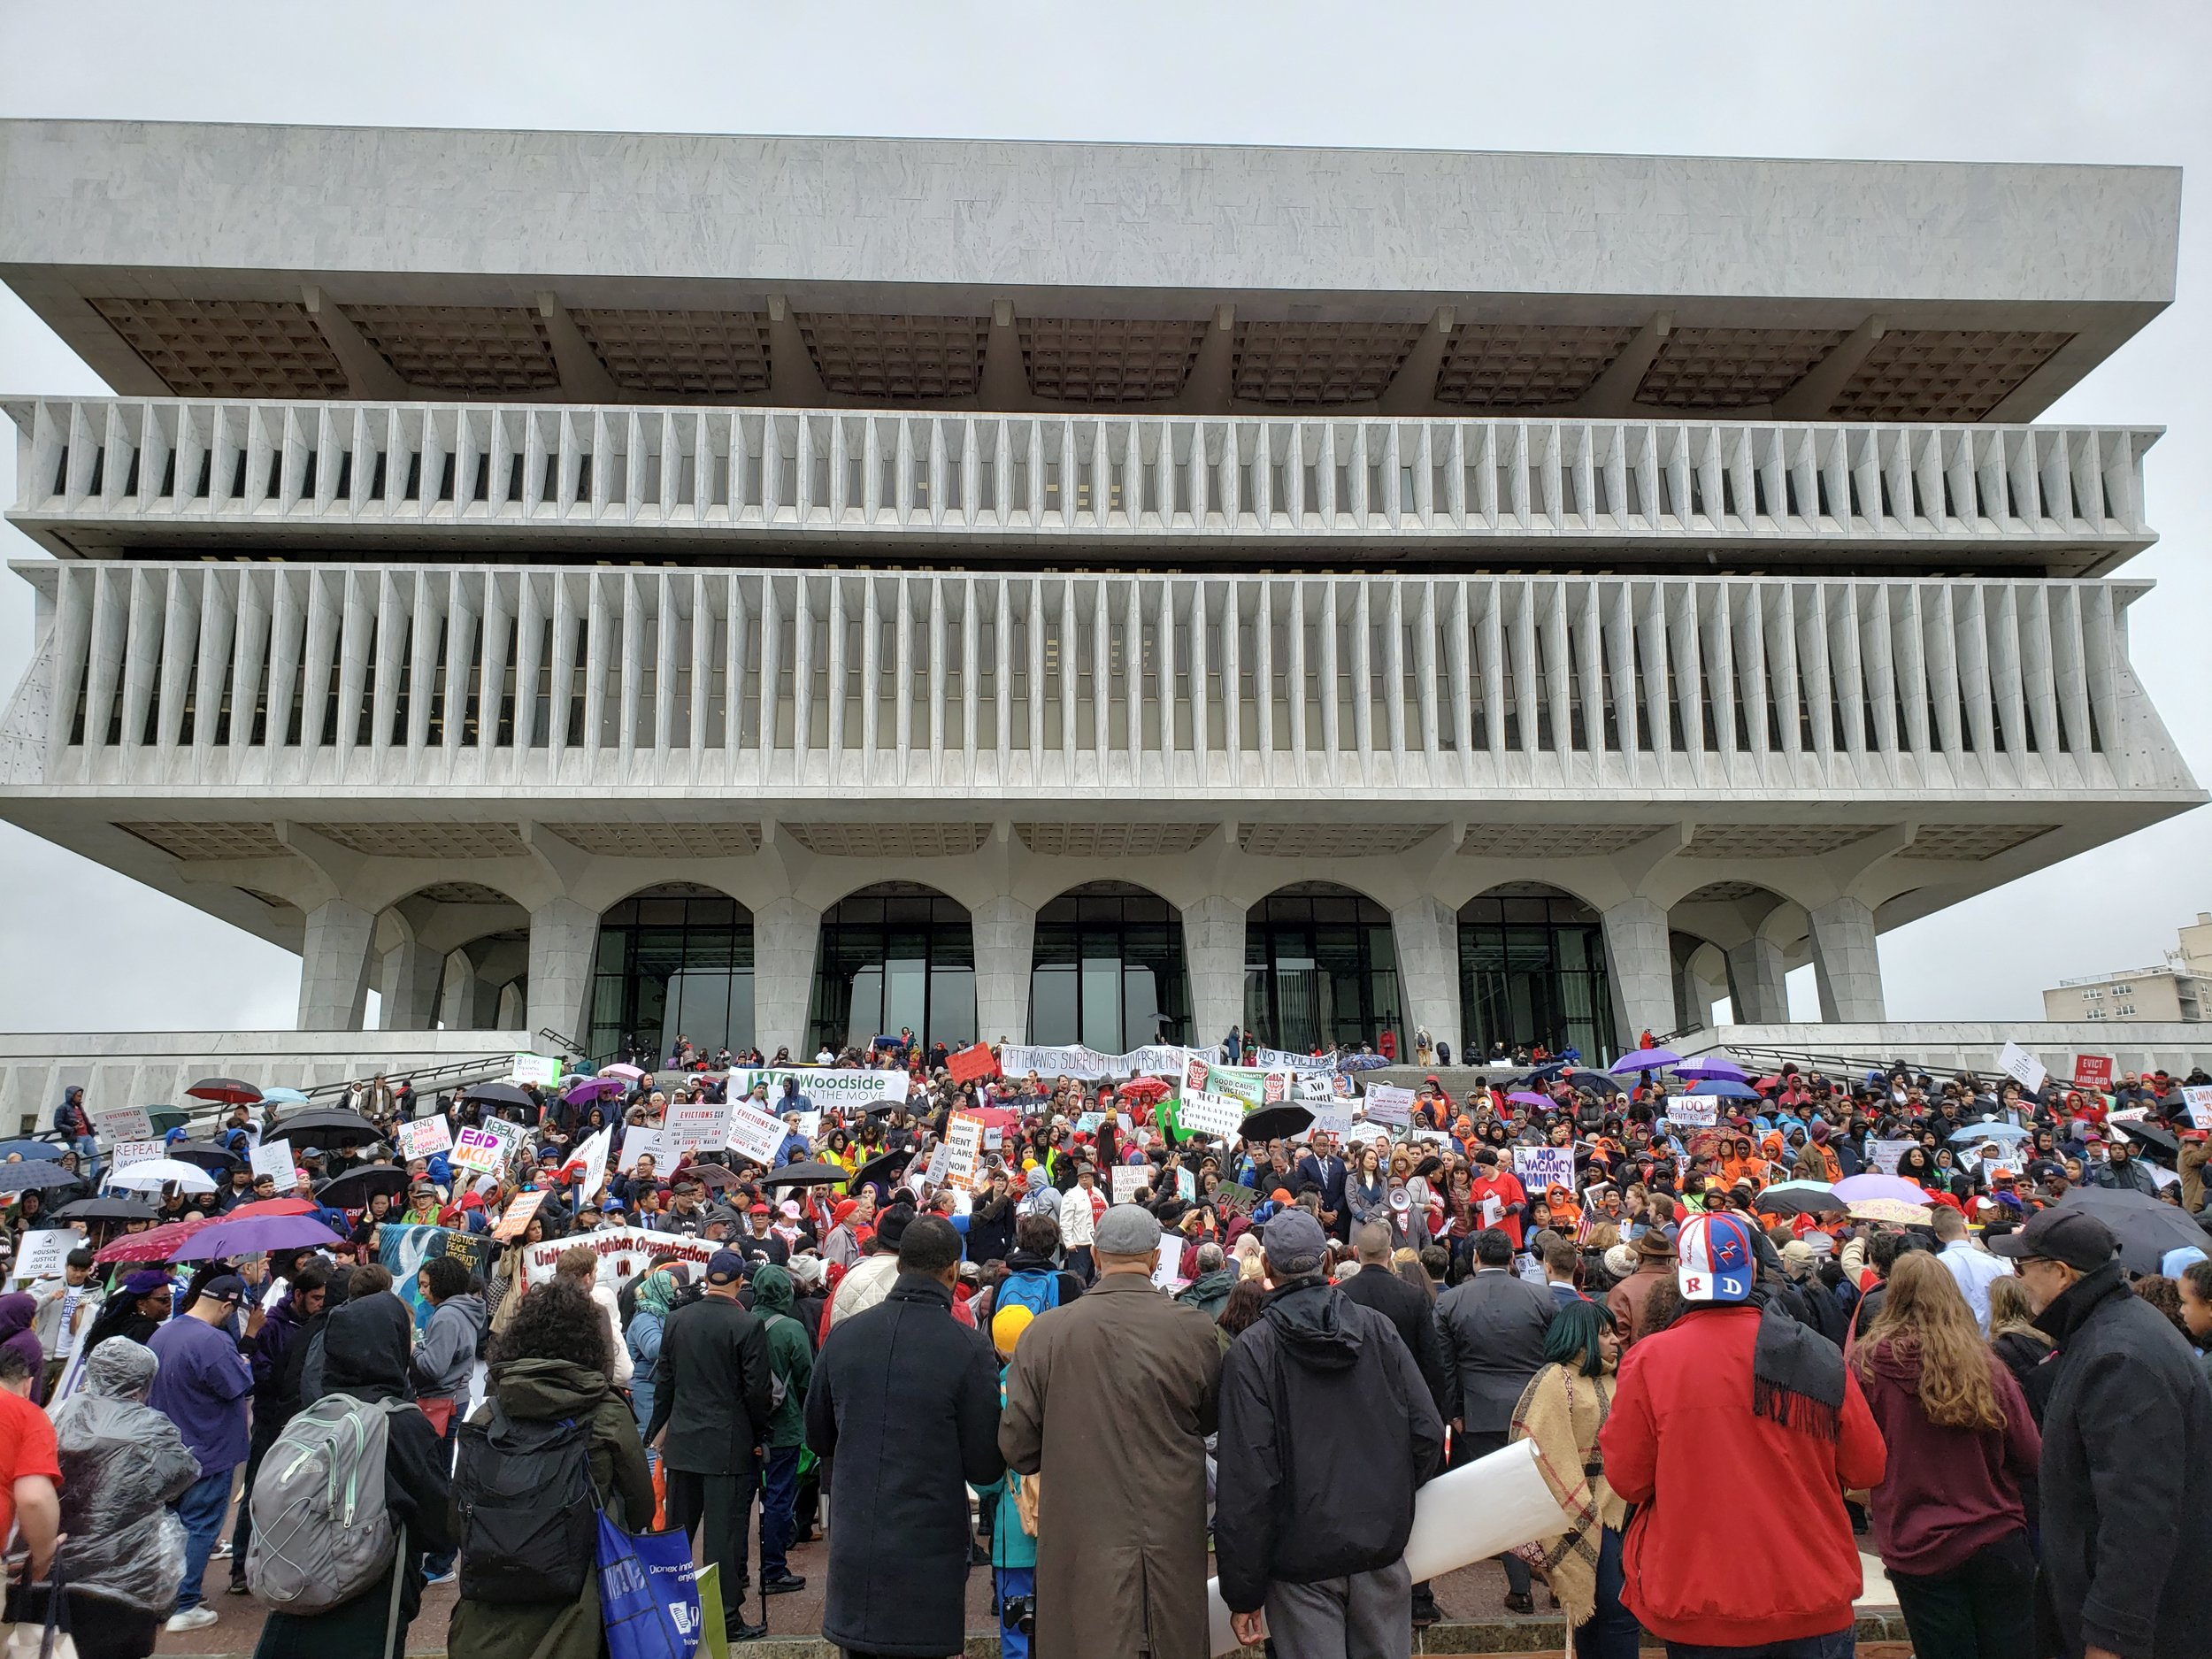 Activists traveled to Albany on May 14th to push the State Senate to pass nine affordable housing-related bills. Photos courtesy of Seonae Byeon.